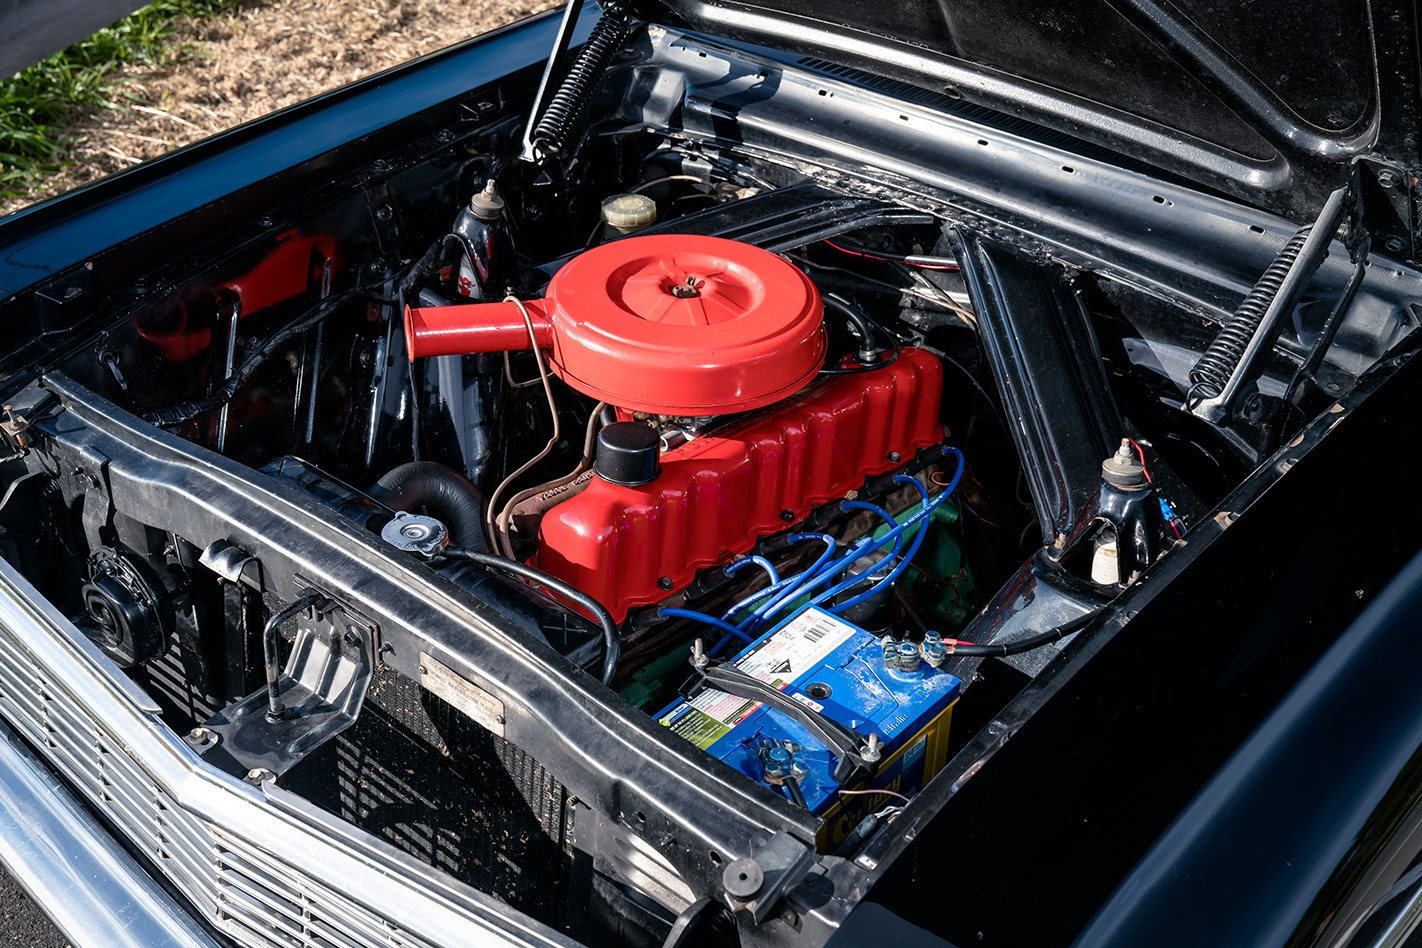 Ford Falcon XP engine bay